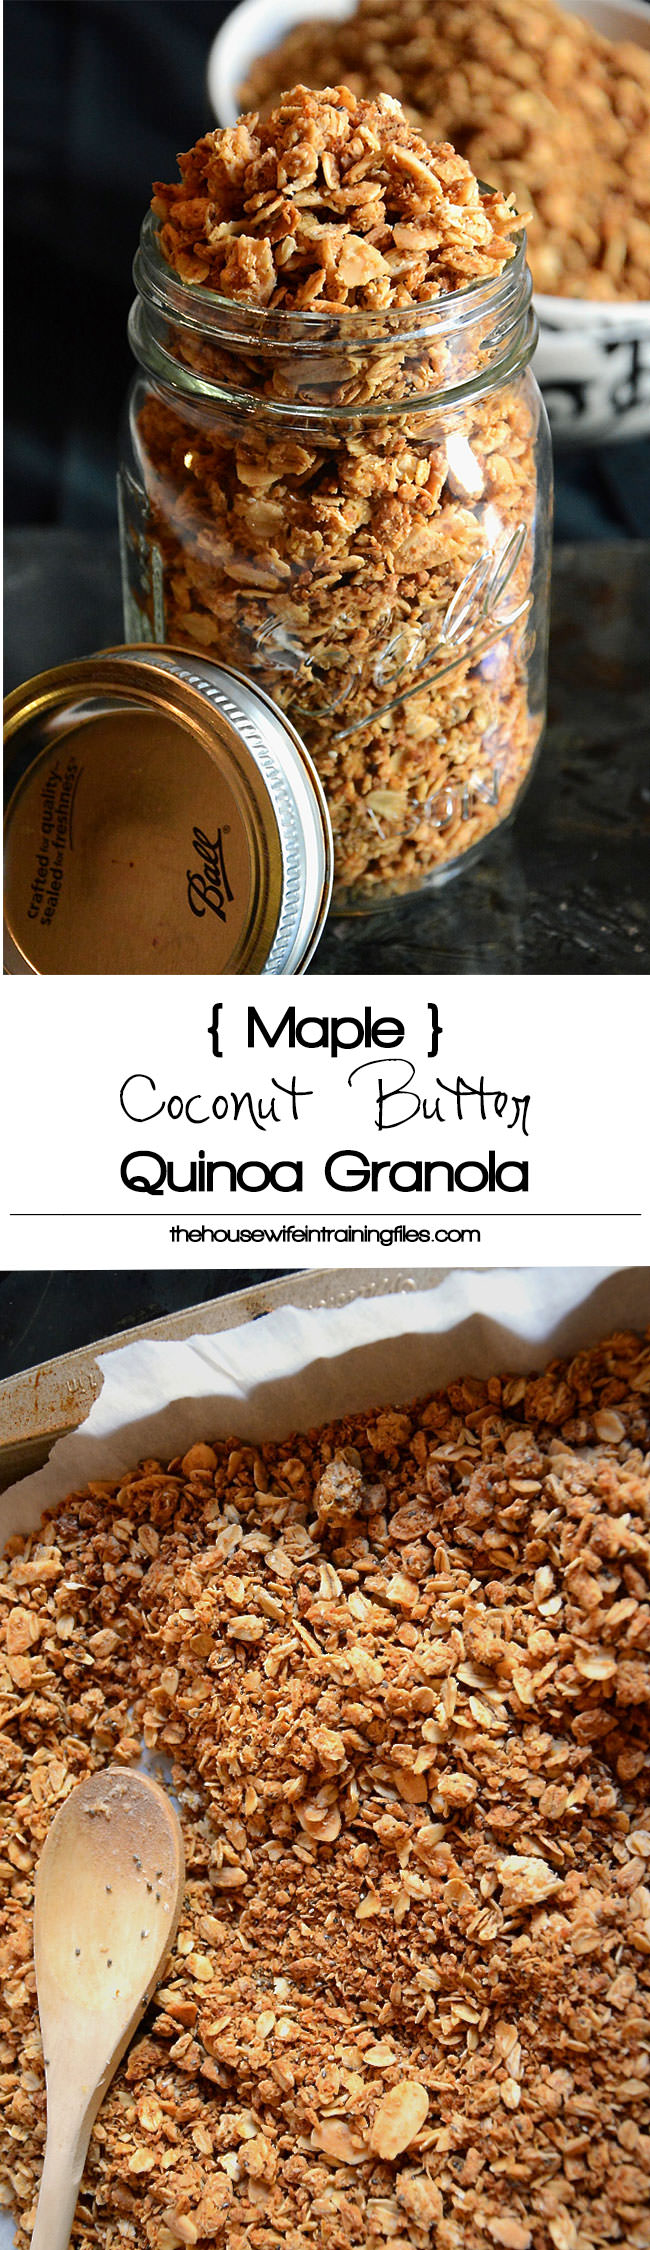 Maple Coconut Butter Quinoa Granola is a makeover of your favorite granola! Loaded with healthy ingredients - coconut, quinoa and oats - this will be your new go to snack! #granola #healthy #glutenfree #quinoa #breakfast